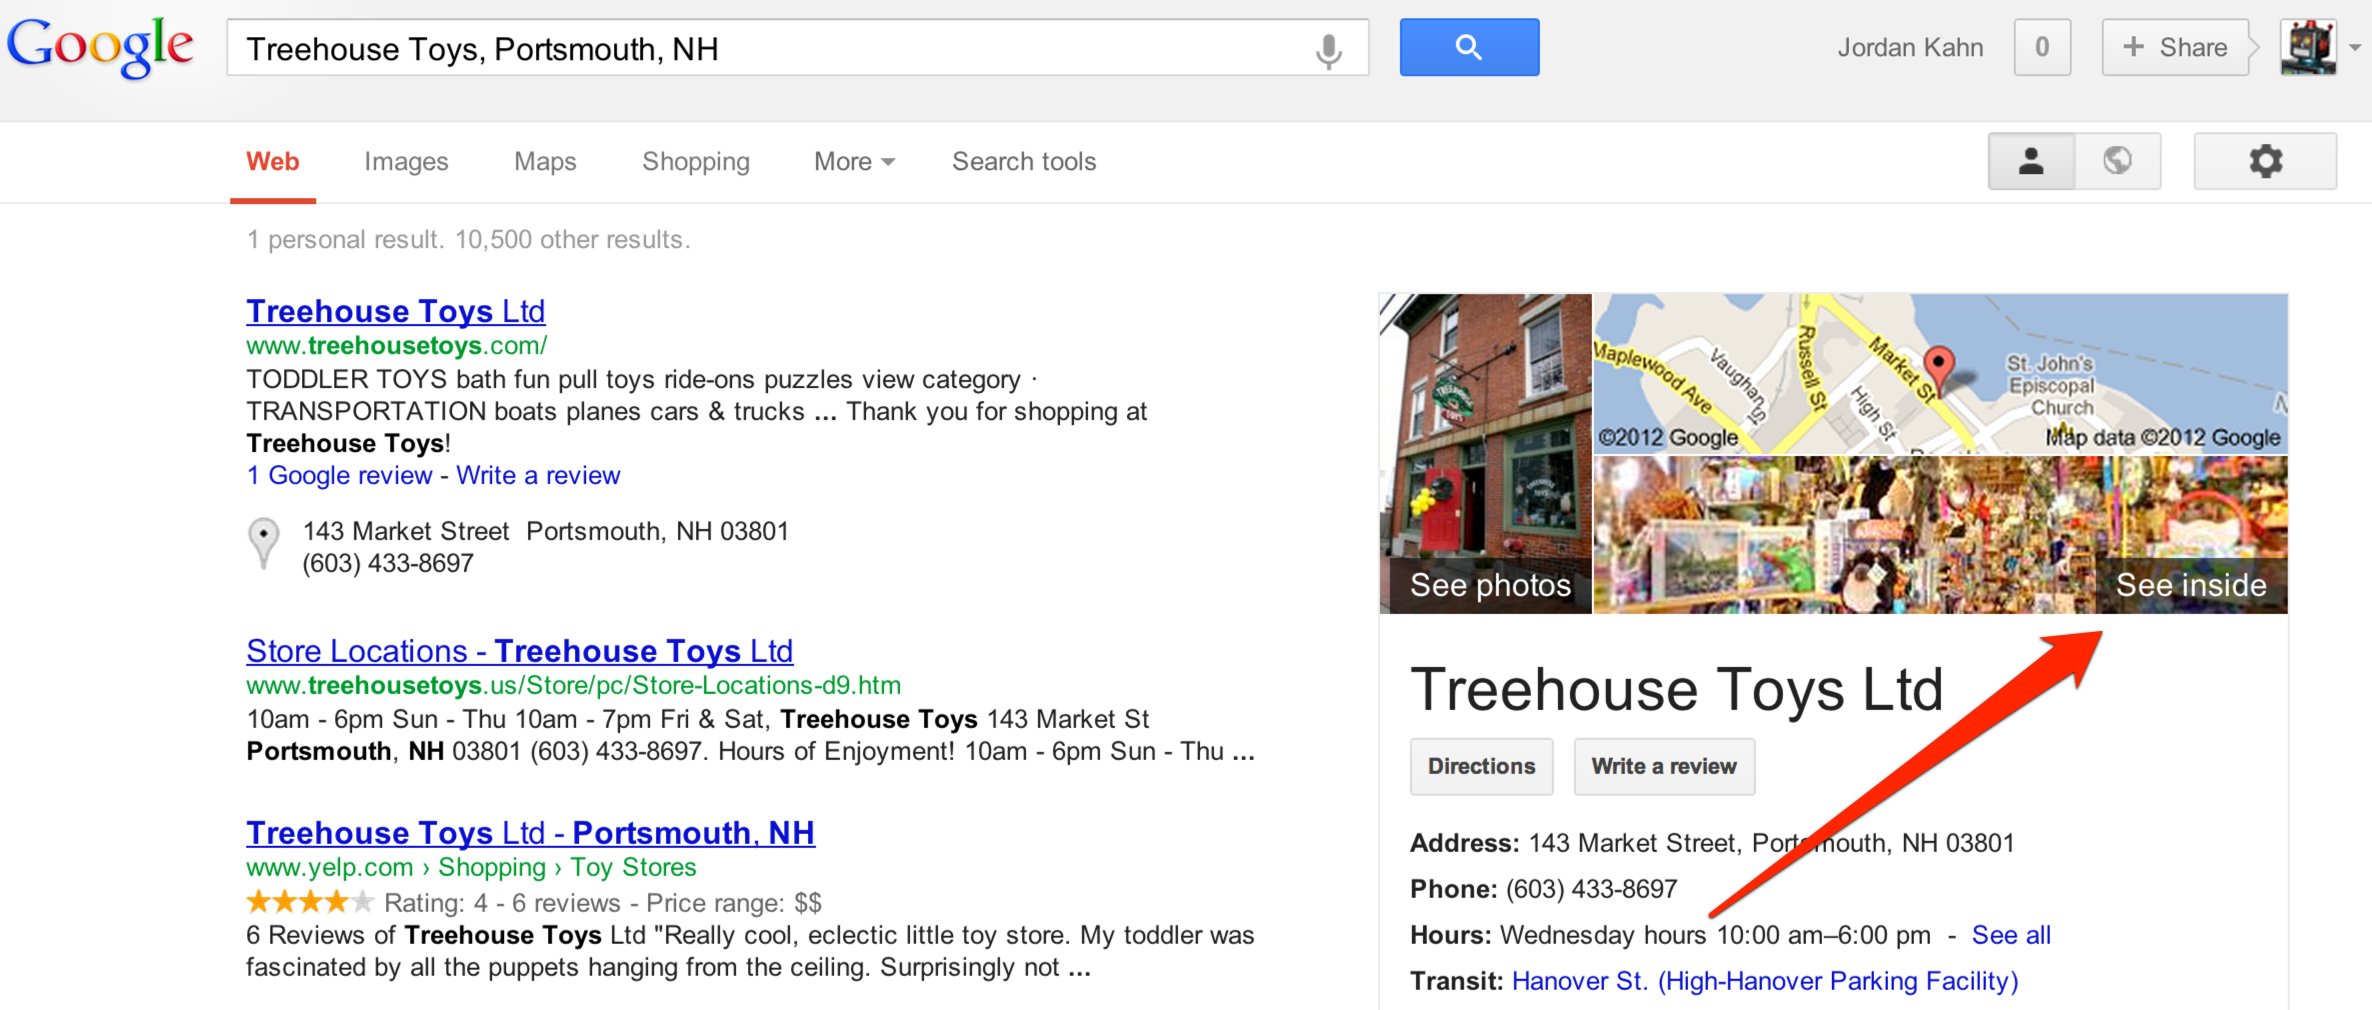 See Inside-search results-Street View